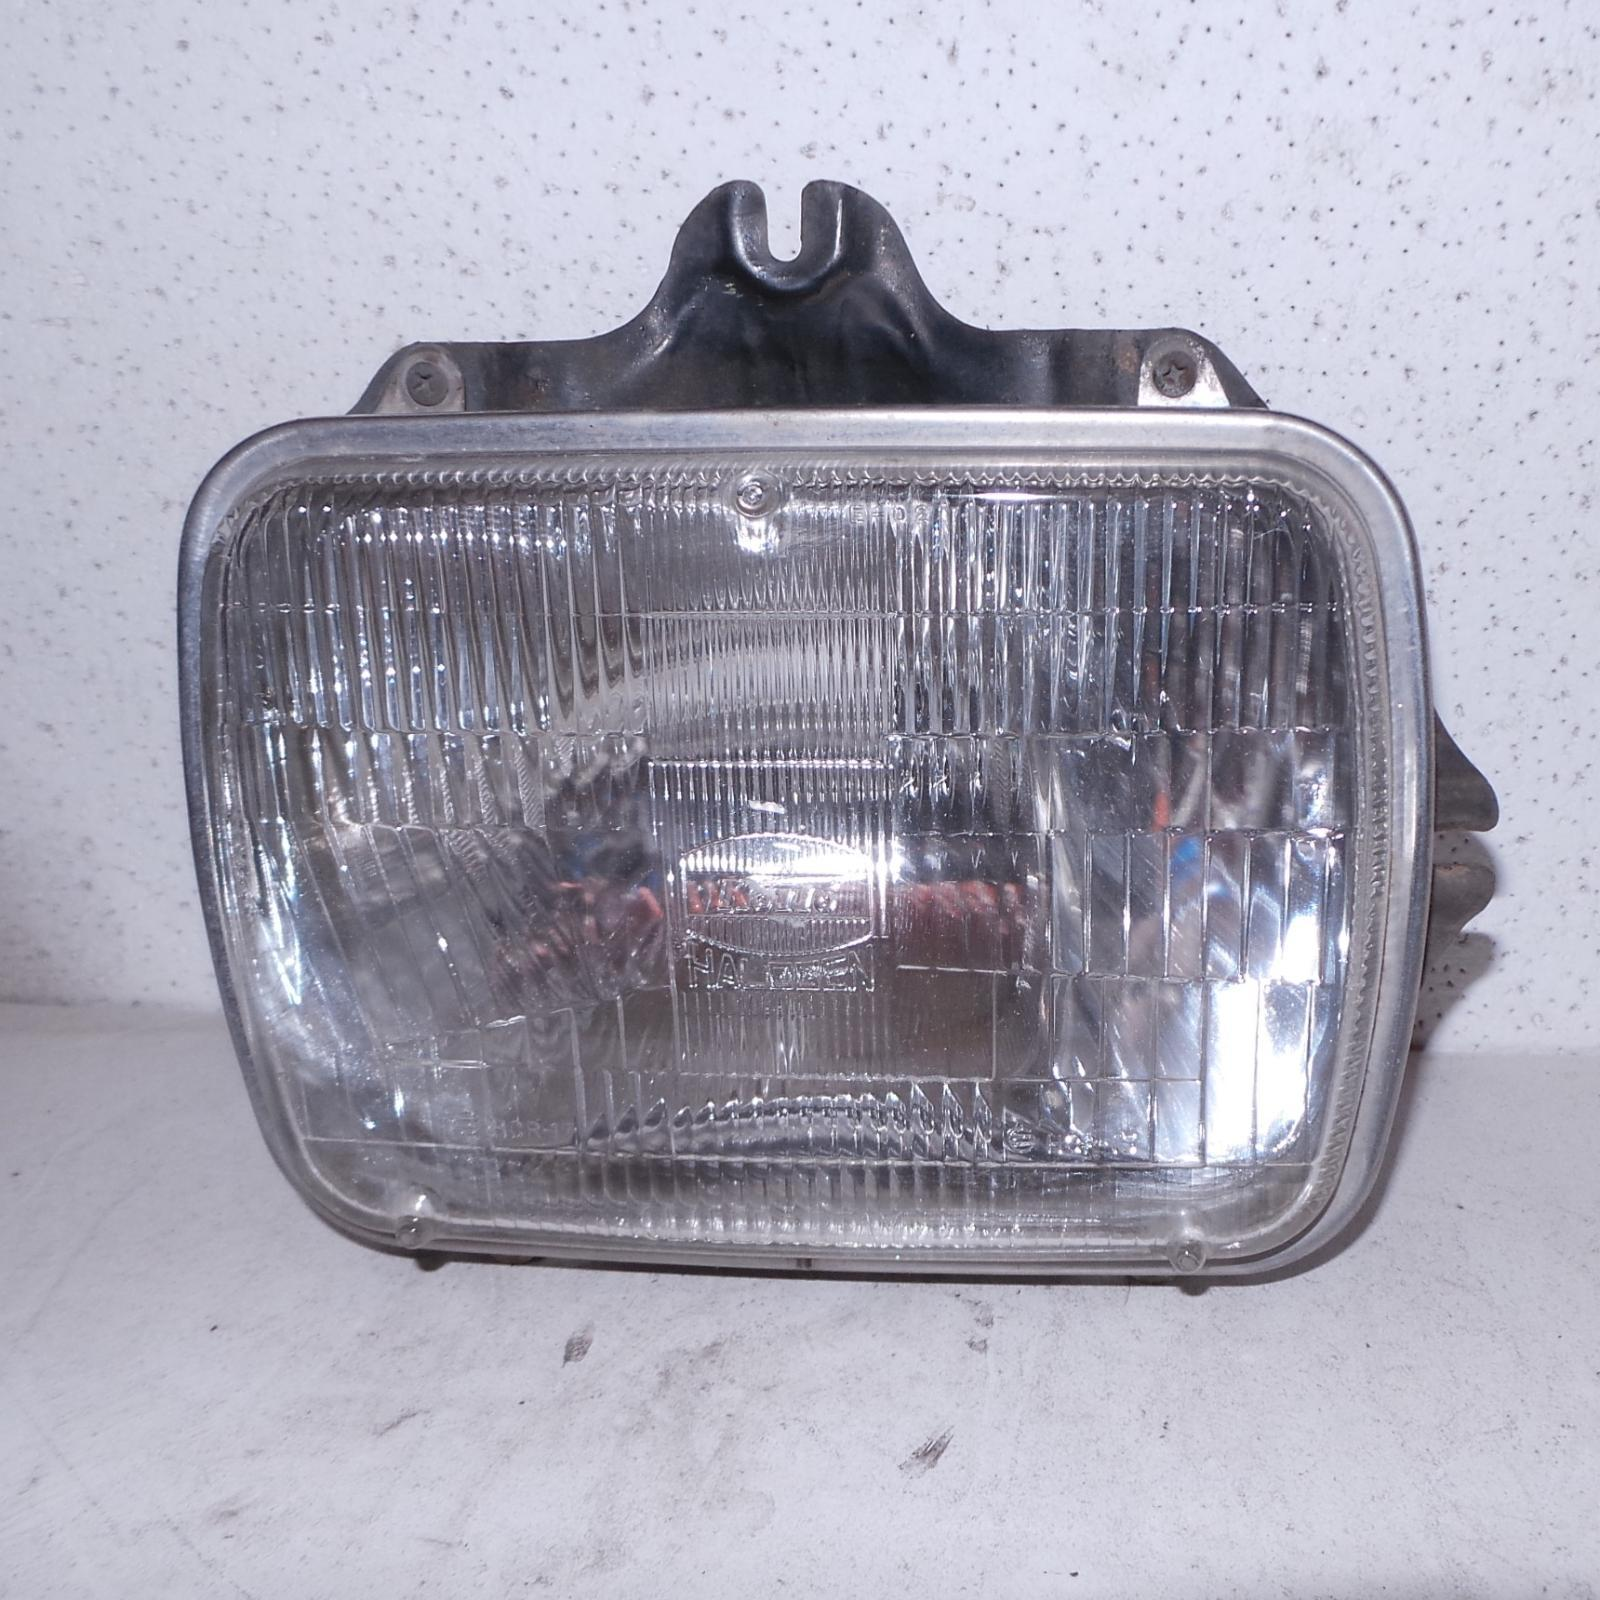 TOYOTA HILUX, Right Headlamp, SEALED BEAM, 10/88-03/05